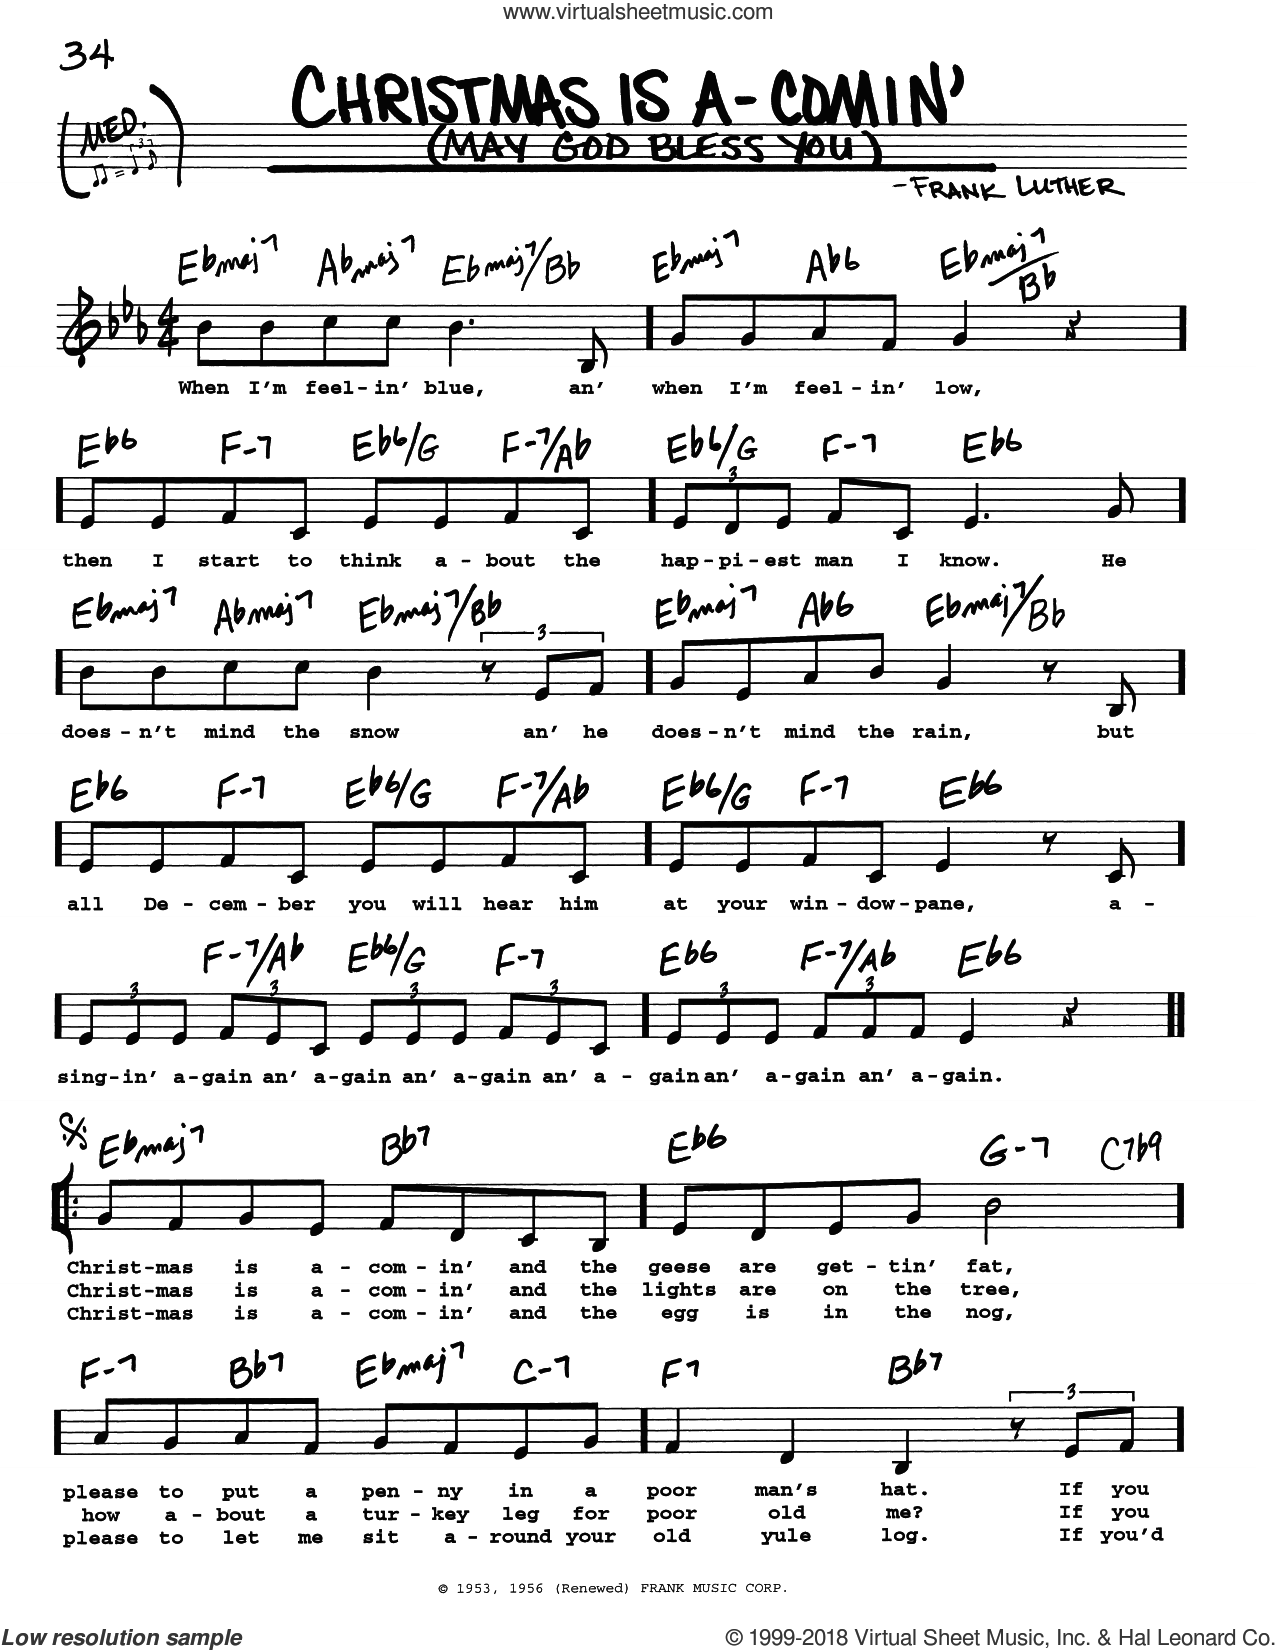 Christmas Is A-Comin' (May God Bless You) sheet music for voice and other instruments (real book with lyrics) by Frank Luther, intermediate skill level